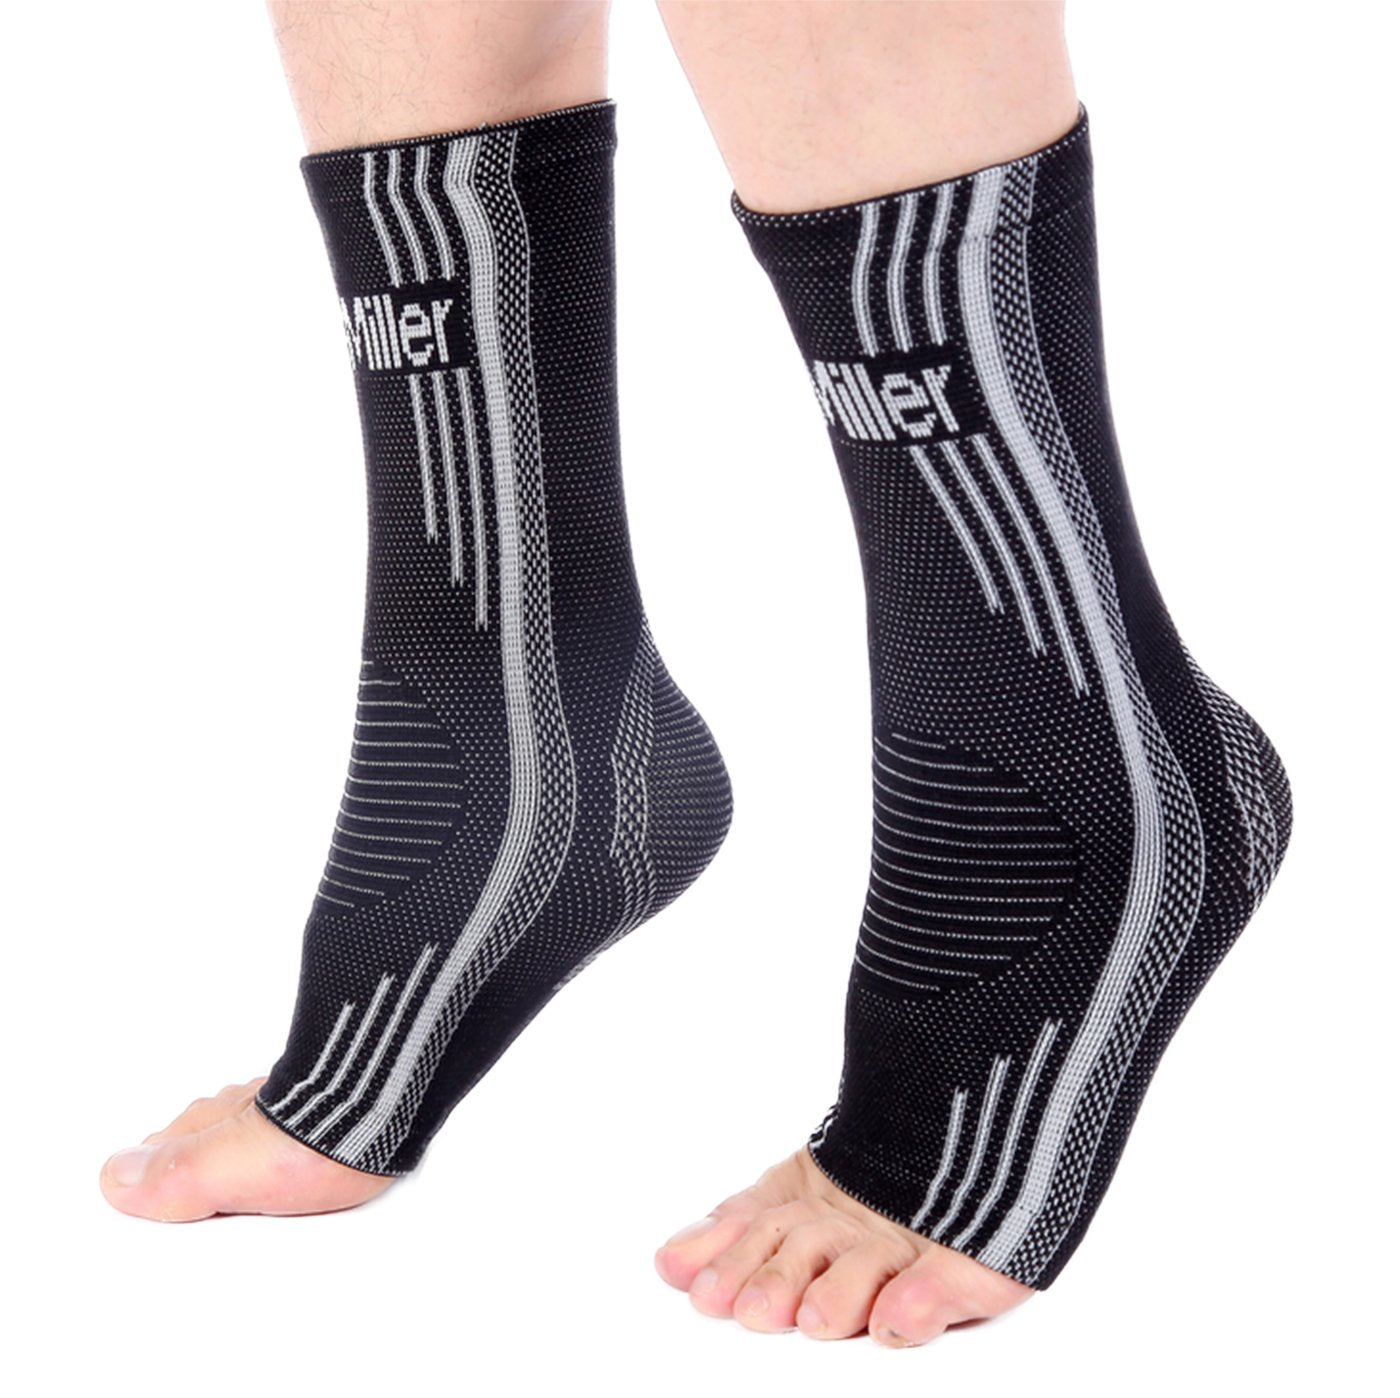 and Heel Pain Air Ankle Support Without Stabilizer for Plantar Fasciitis X-Large Achilles tendonitis